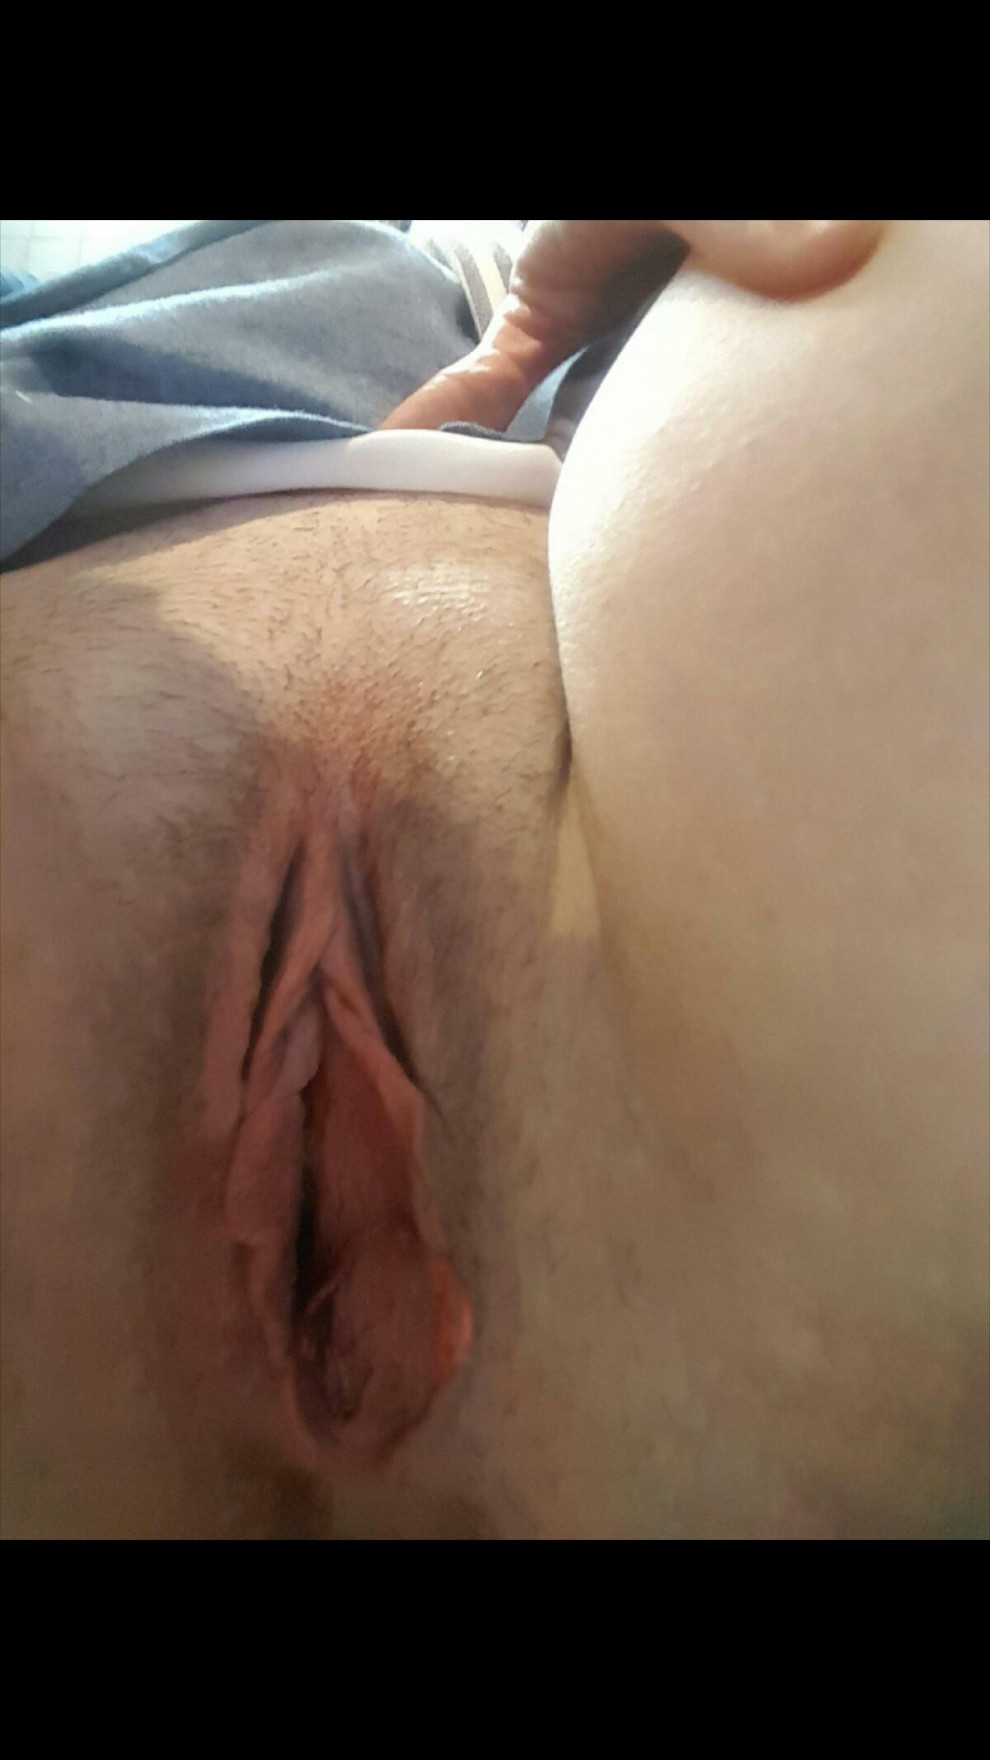 I'm still looking to find a guy to fuck in Alabama. My pussy lips need to grip a big cock. Xoxo...